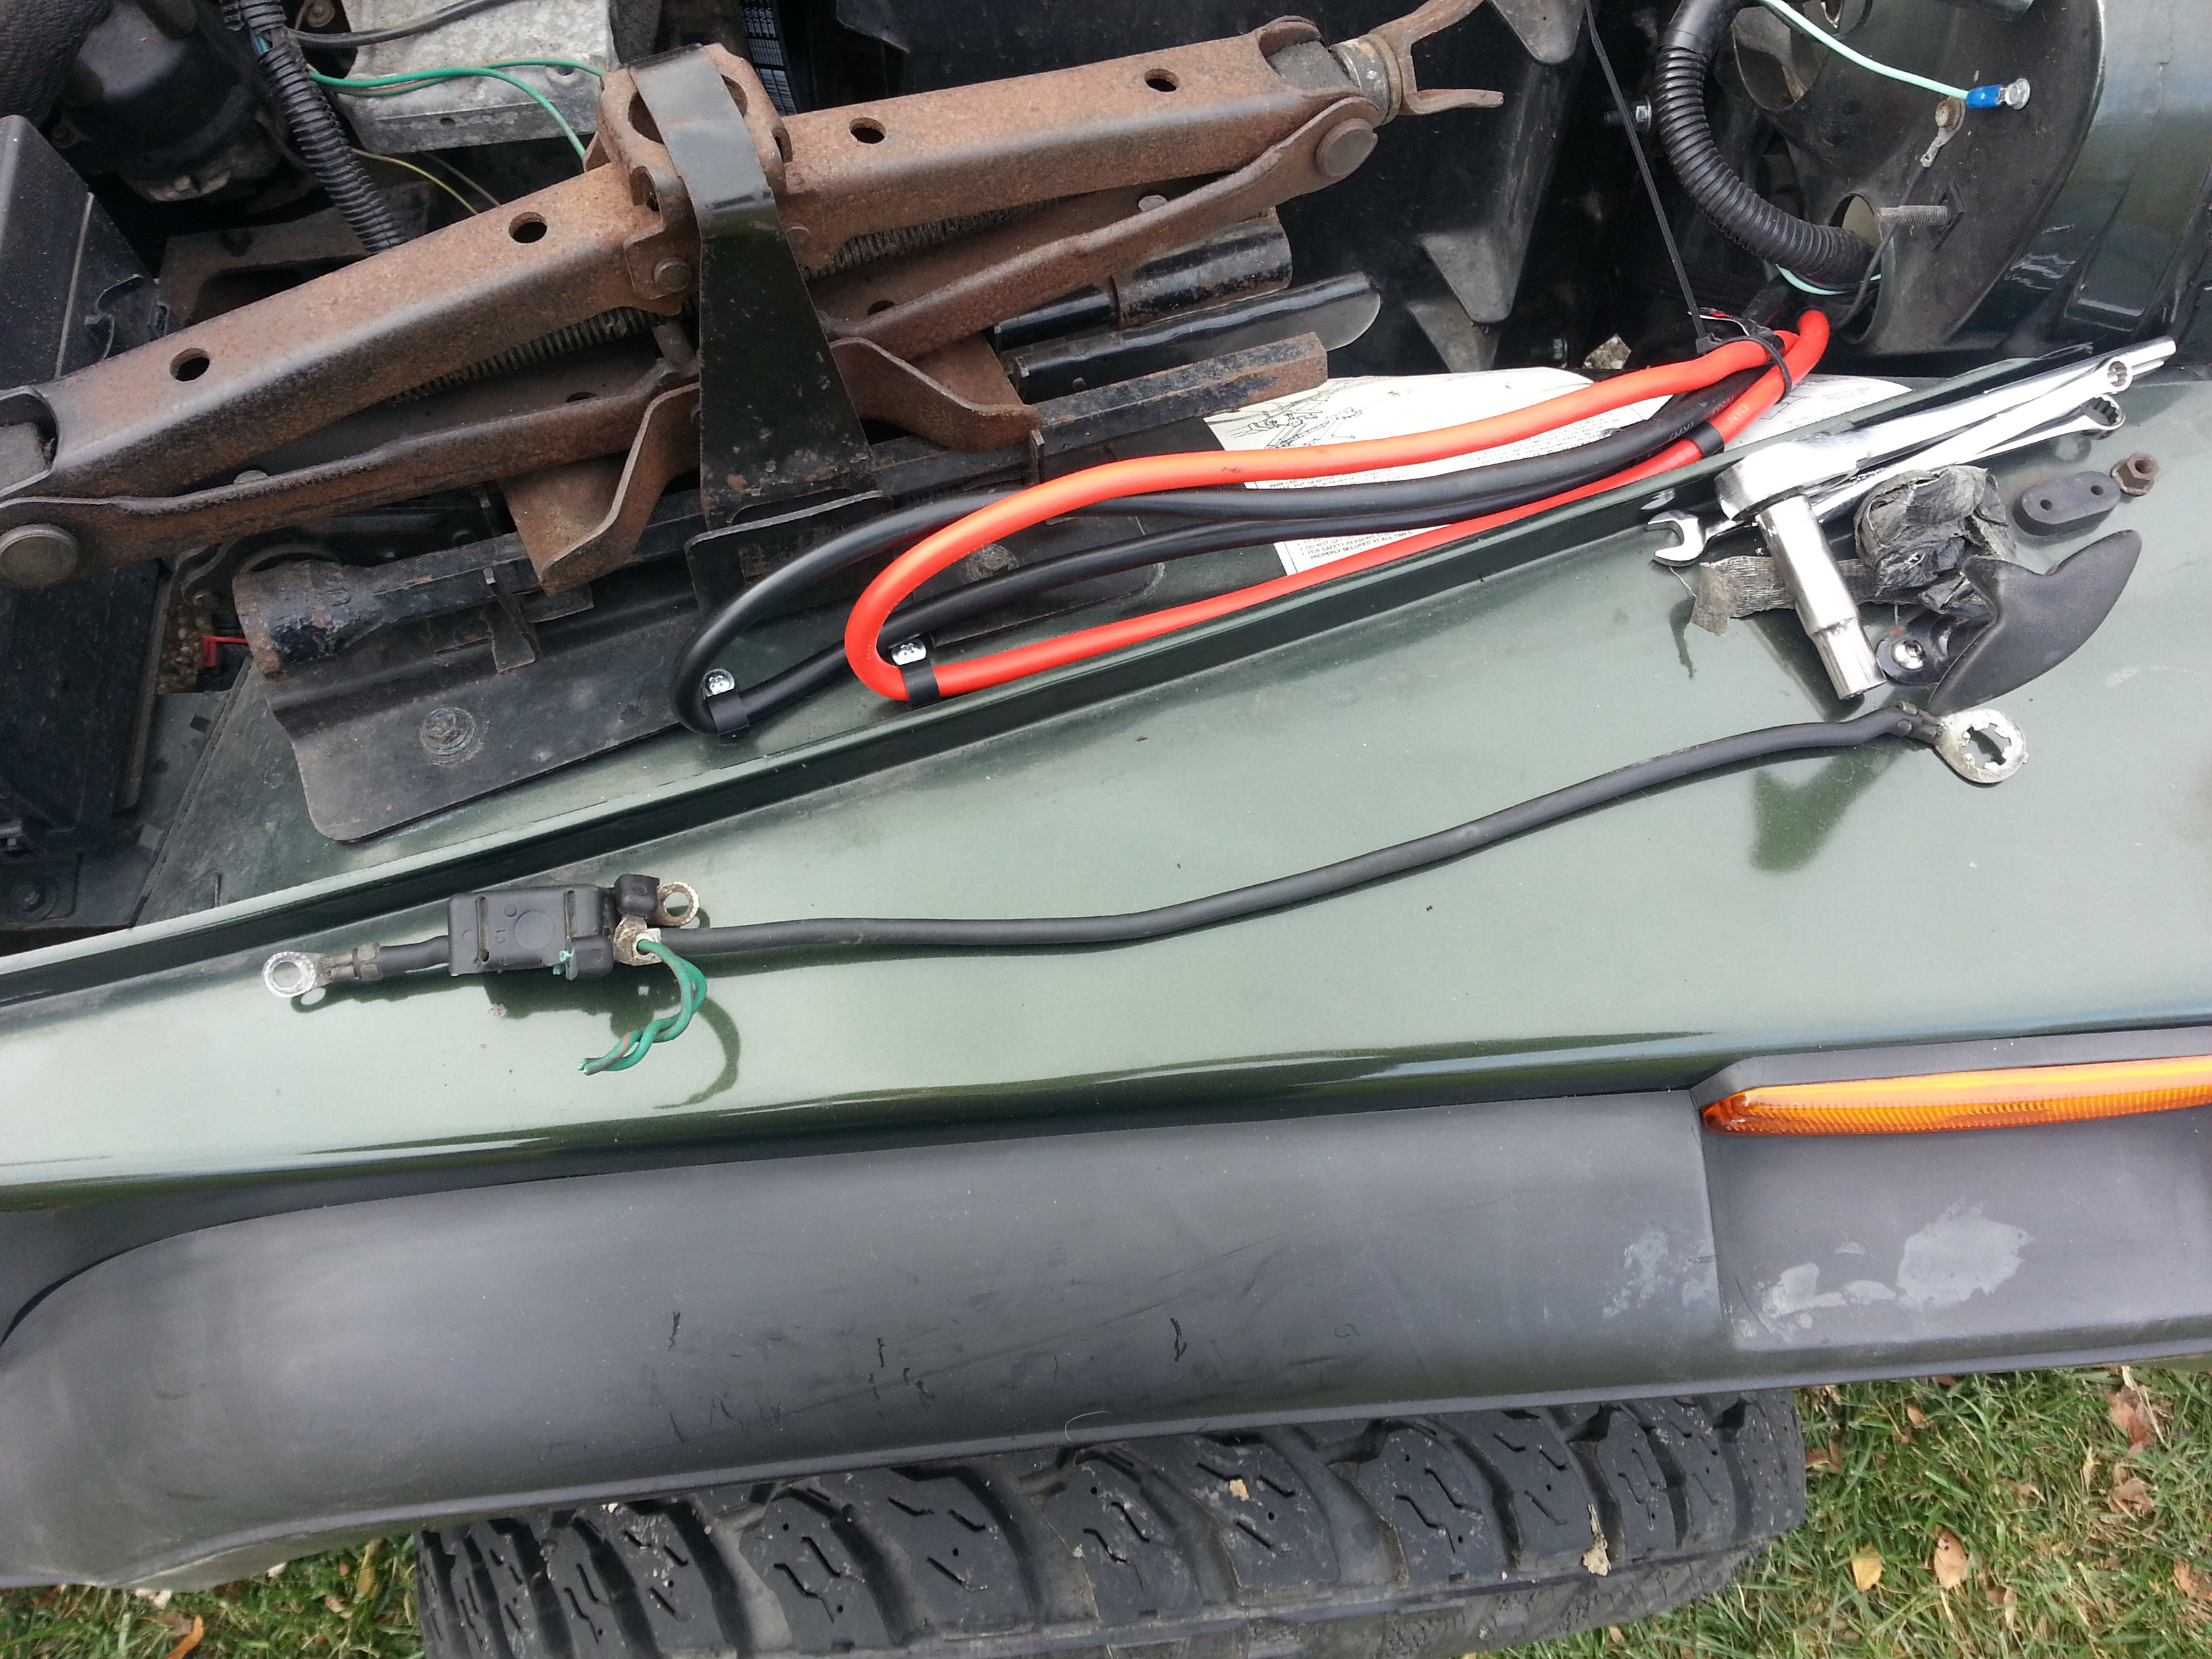 y splice wire harness html with 849y0 Jeep Yj Sahara Rto Grand Replacing Alternator 95 Yj Wrangler on Wiring harness mazda mpv additionally 839000 Mgs True Dual Install Pics And Video also Index17 besides 13708 Vz  modore Wiring Diagram Mobile Phone as well 839000 Mgs True Dual Install Pics And Video.